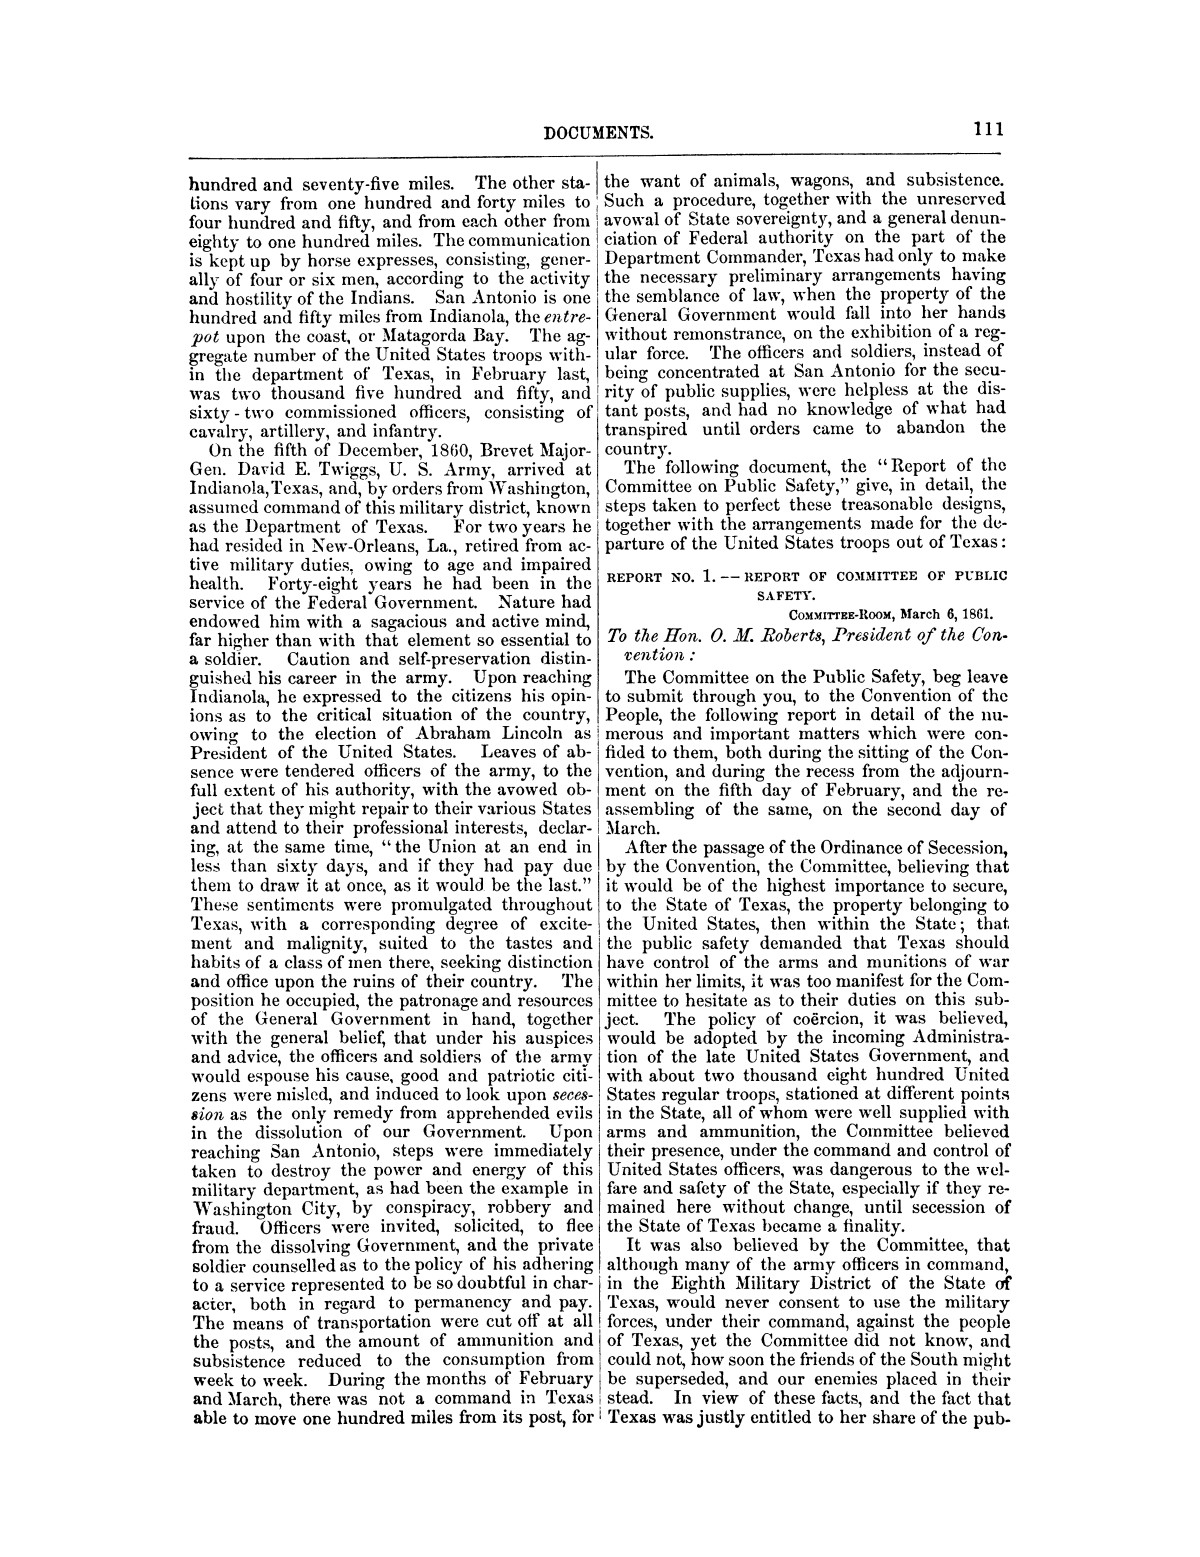 The treachery in Texas, the secession of Texas, and the arrest of the United States officers and soldiers serving in Texas. Read before the New-York Historical Society, June 25, 1861. By Major J. T. Sprague, U. S. A.                                                                                                      [Sequence #]: 5 of 36